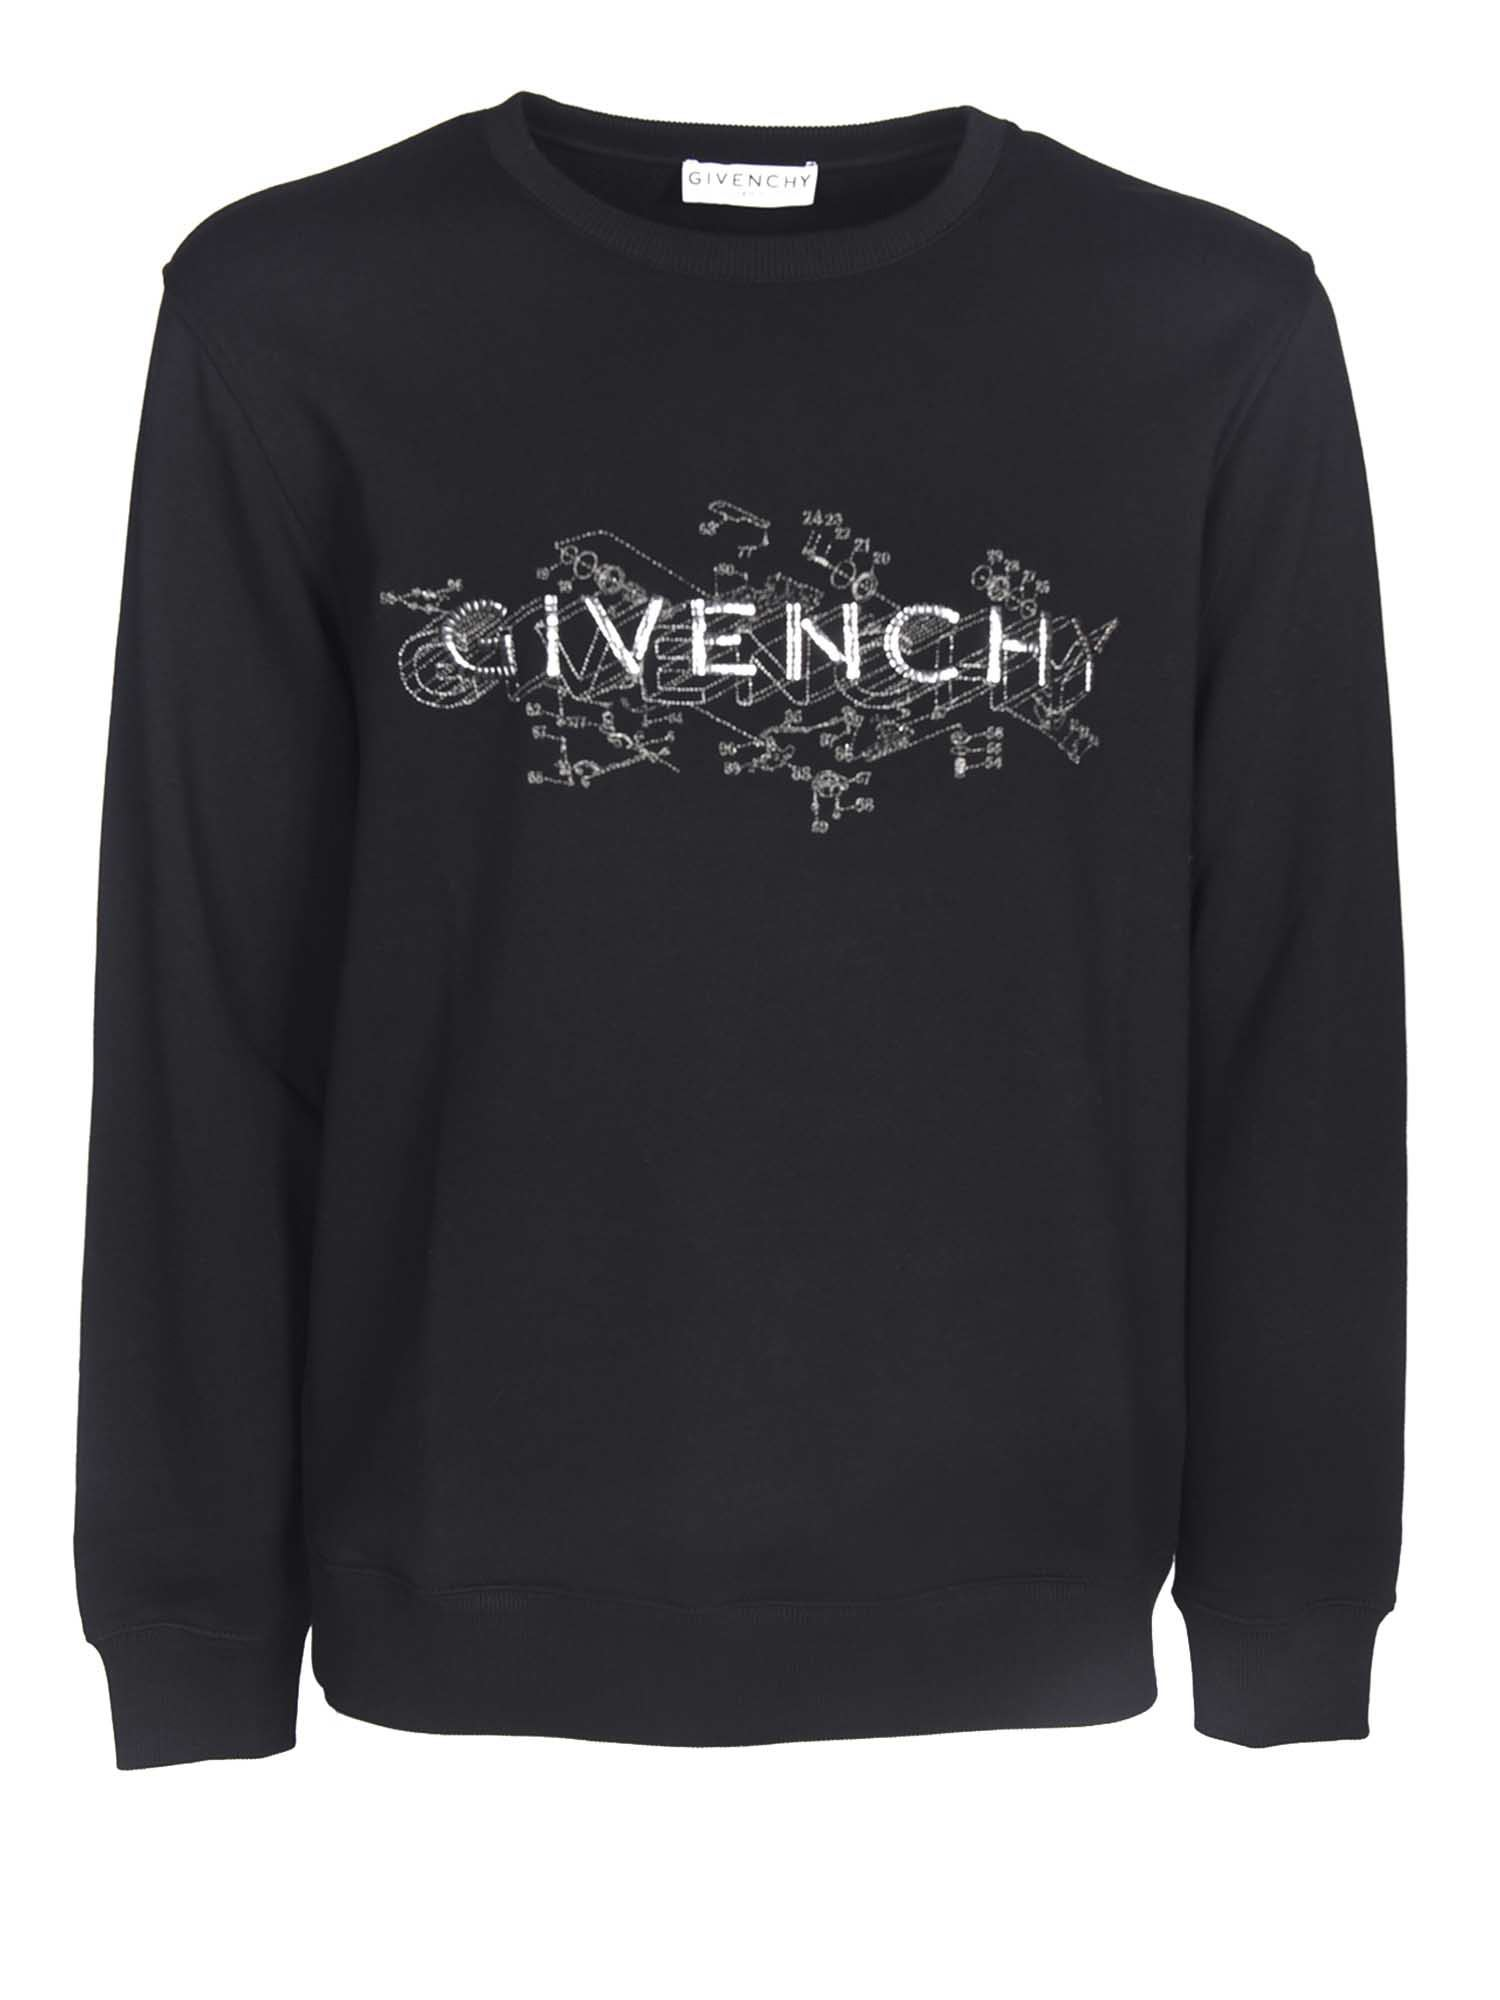 Givenchy LOGO SWEATSHIRT IN BLACK